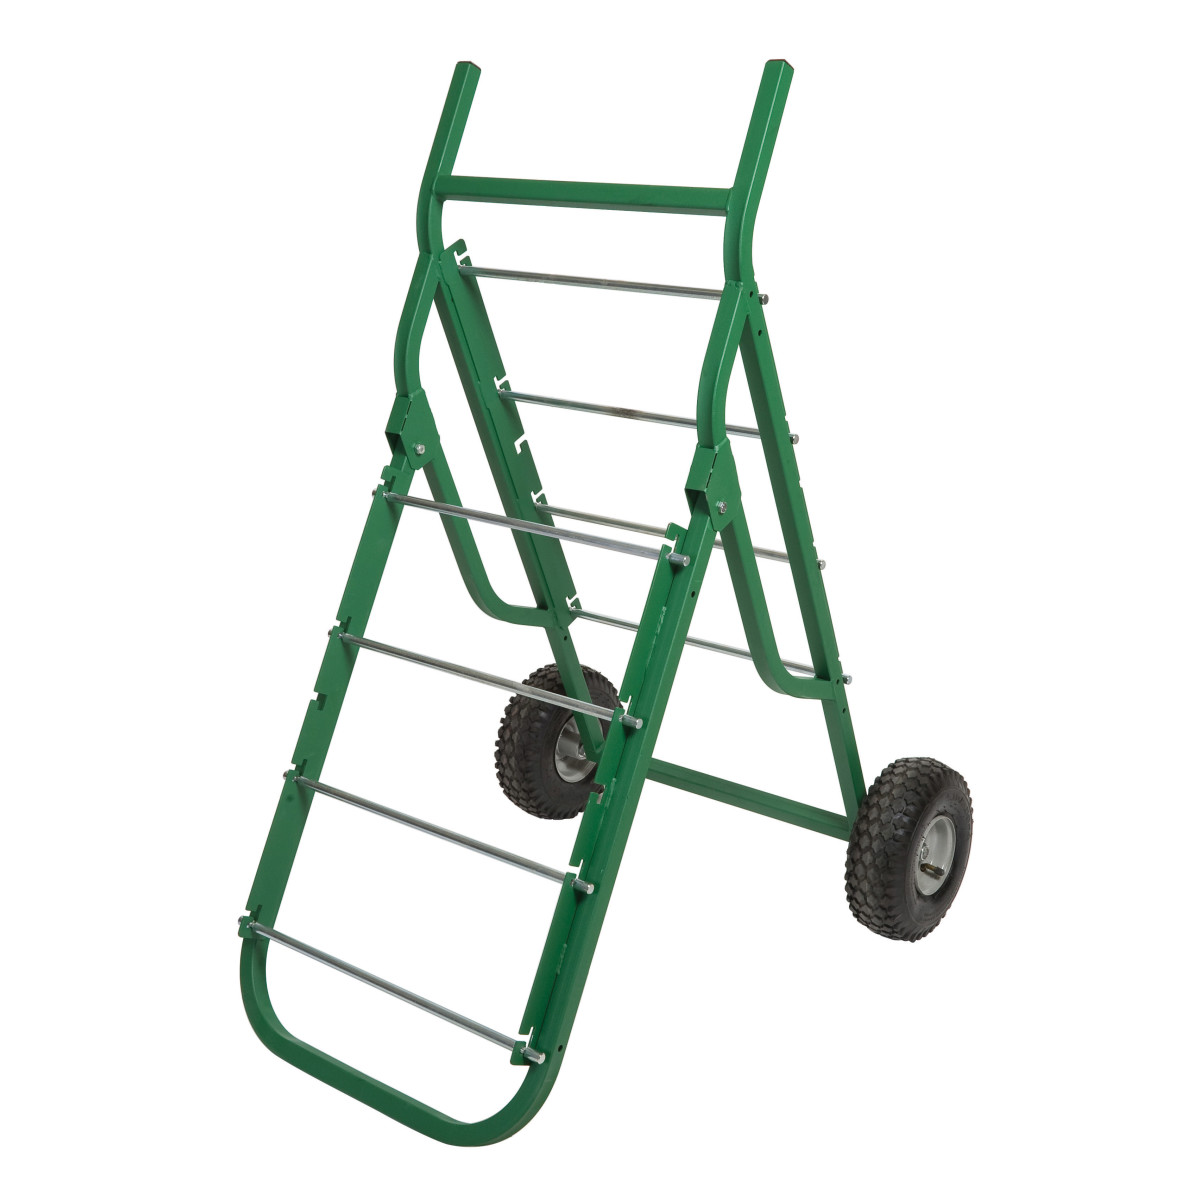 Greenlee 9510 Caddy Deluxe A Frame Mobile (9510)